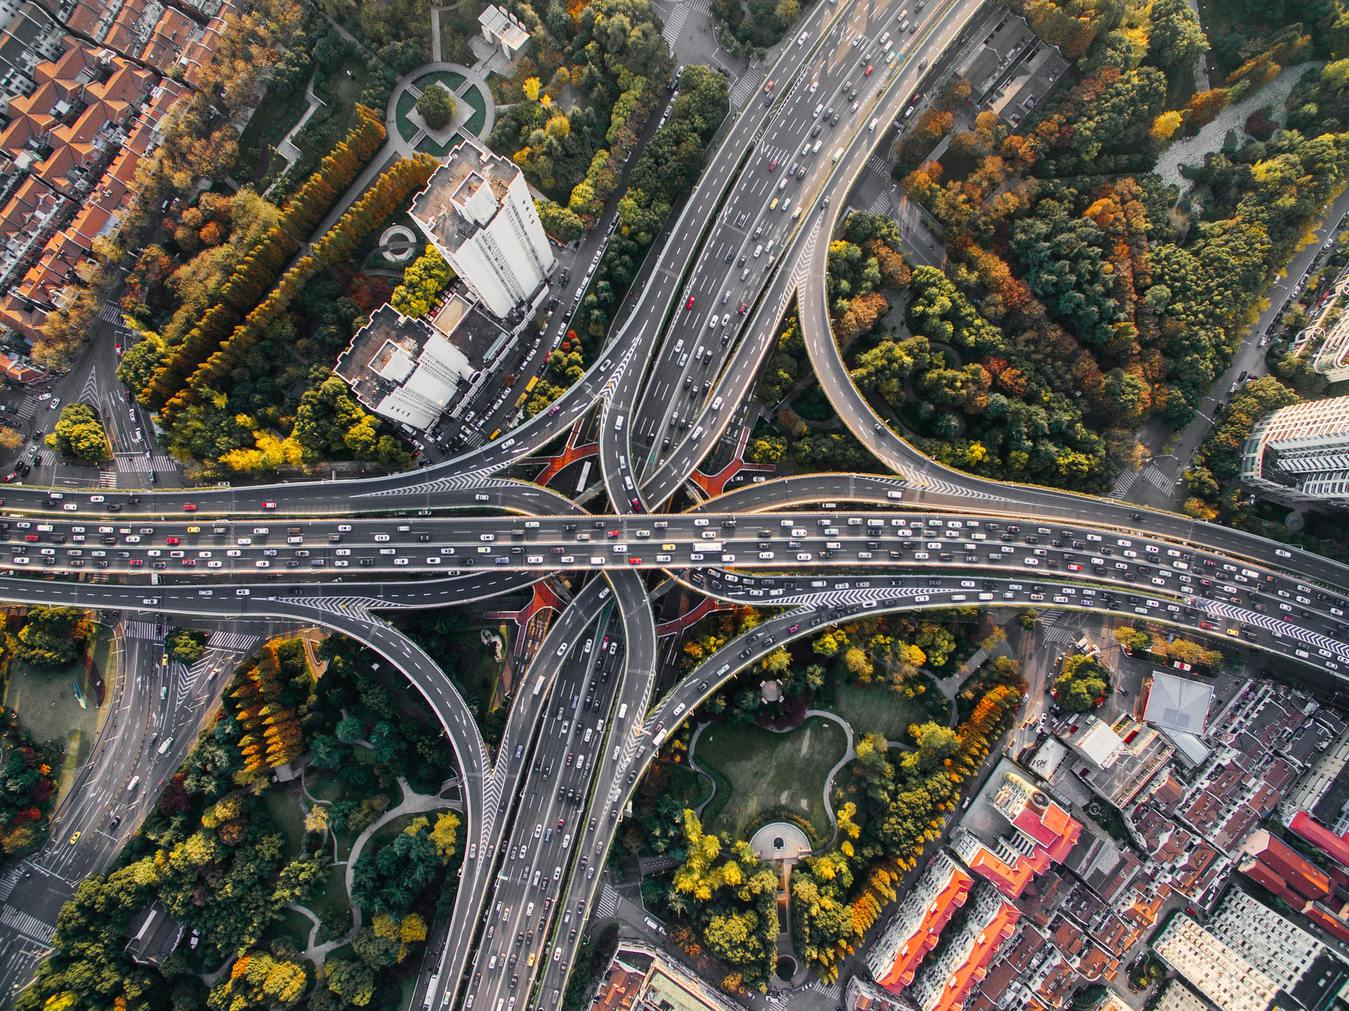 Many intersecting roads birds eye view top